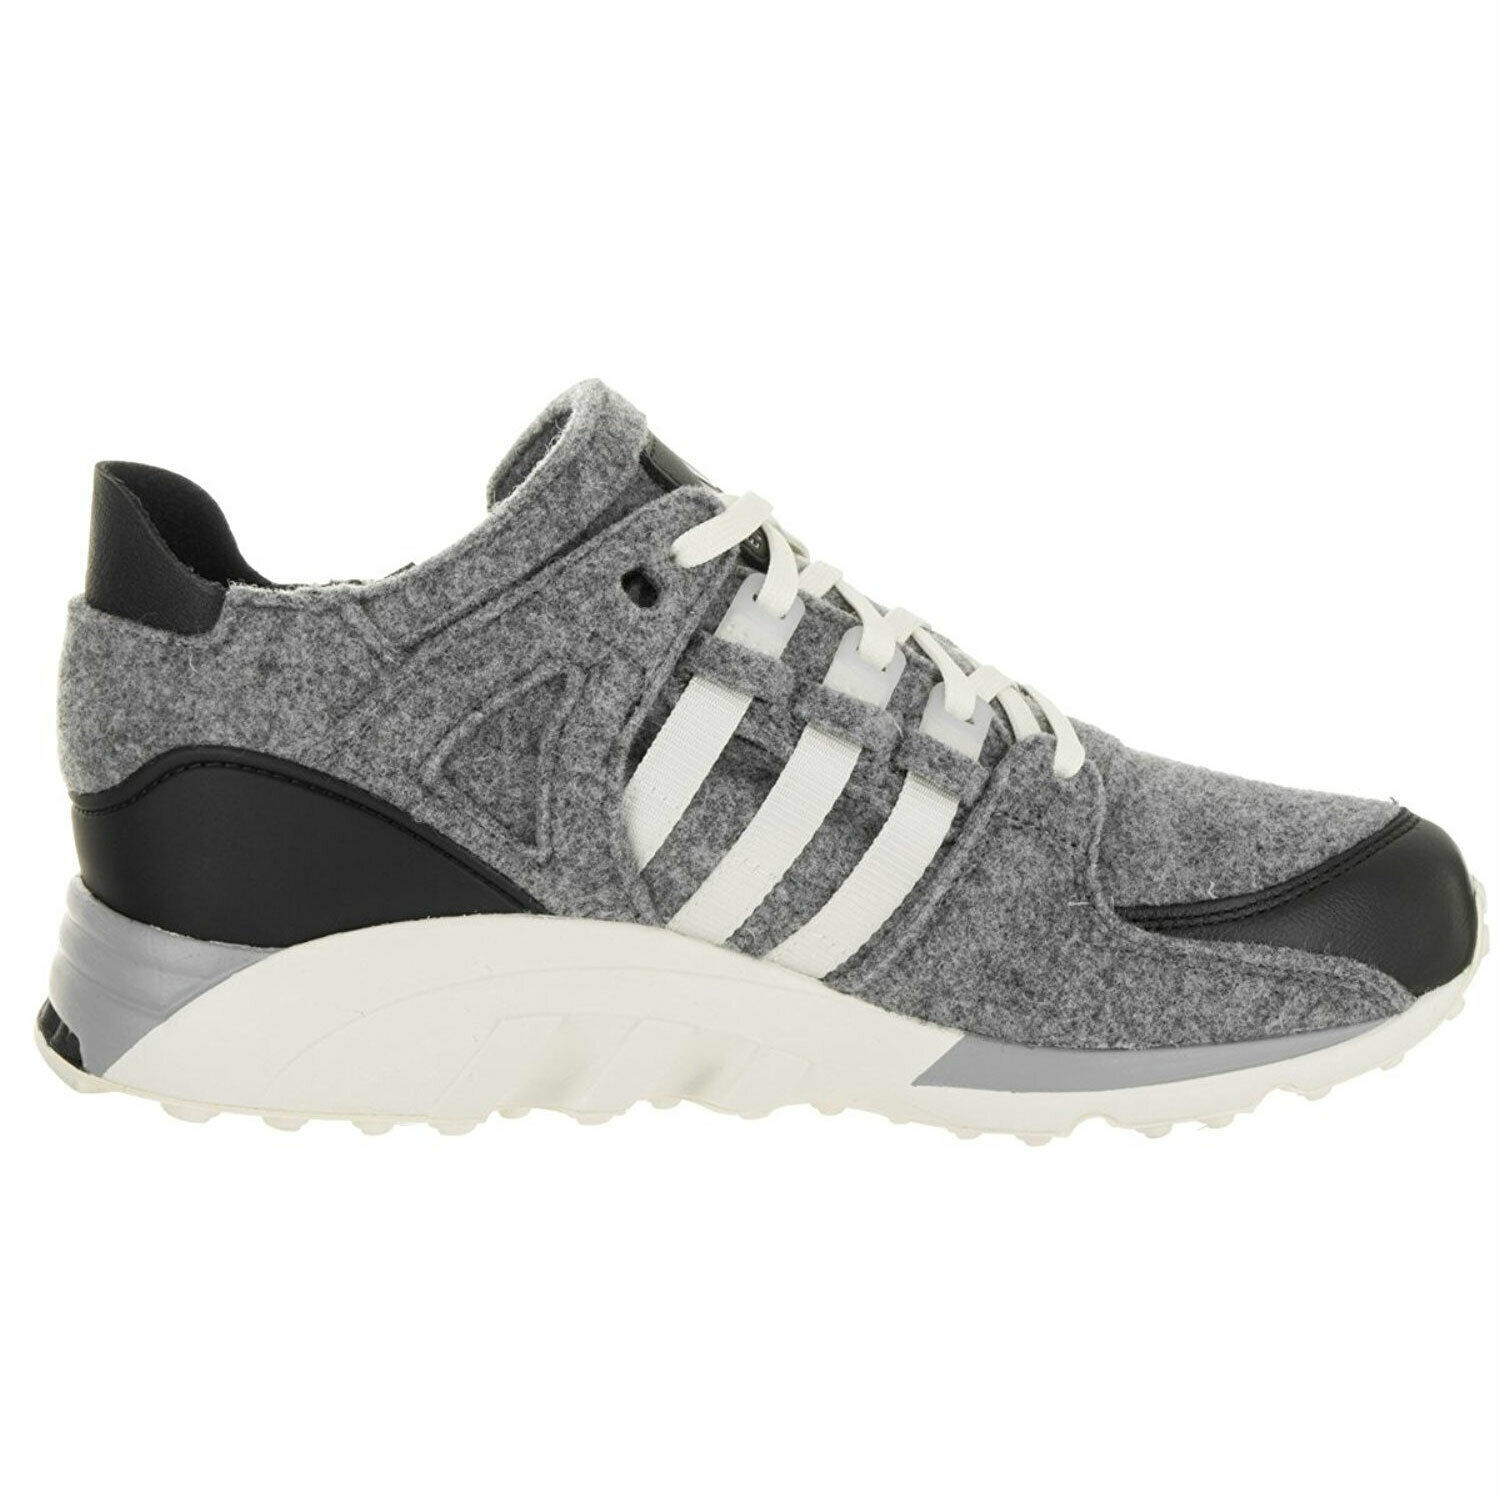 Primary image for Adidas Men's Equipment Running Support Black/White/Grey AQ8454